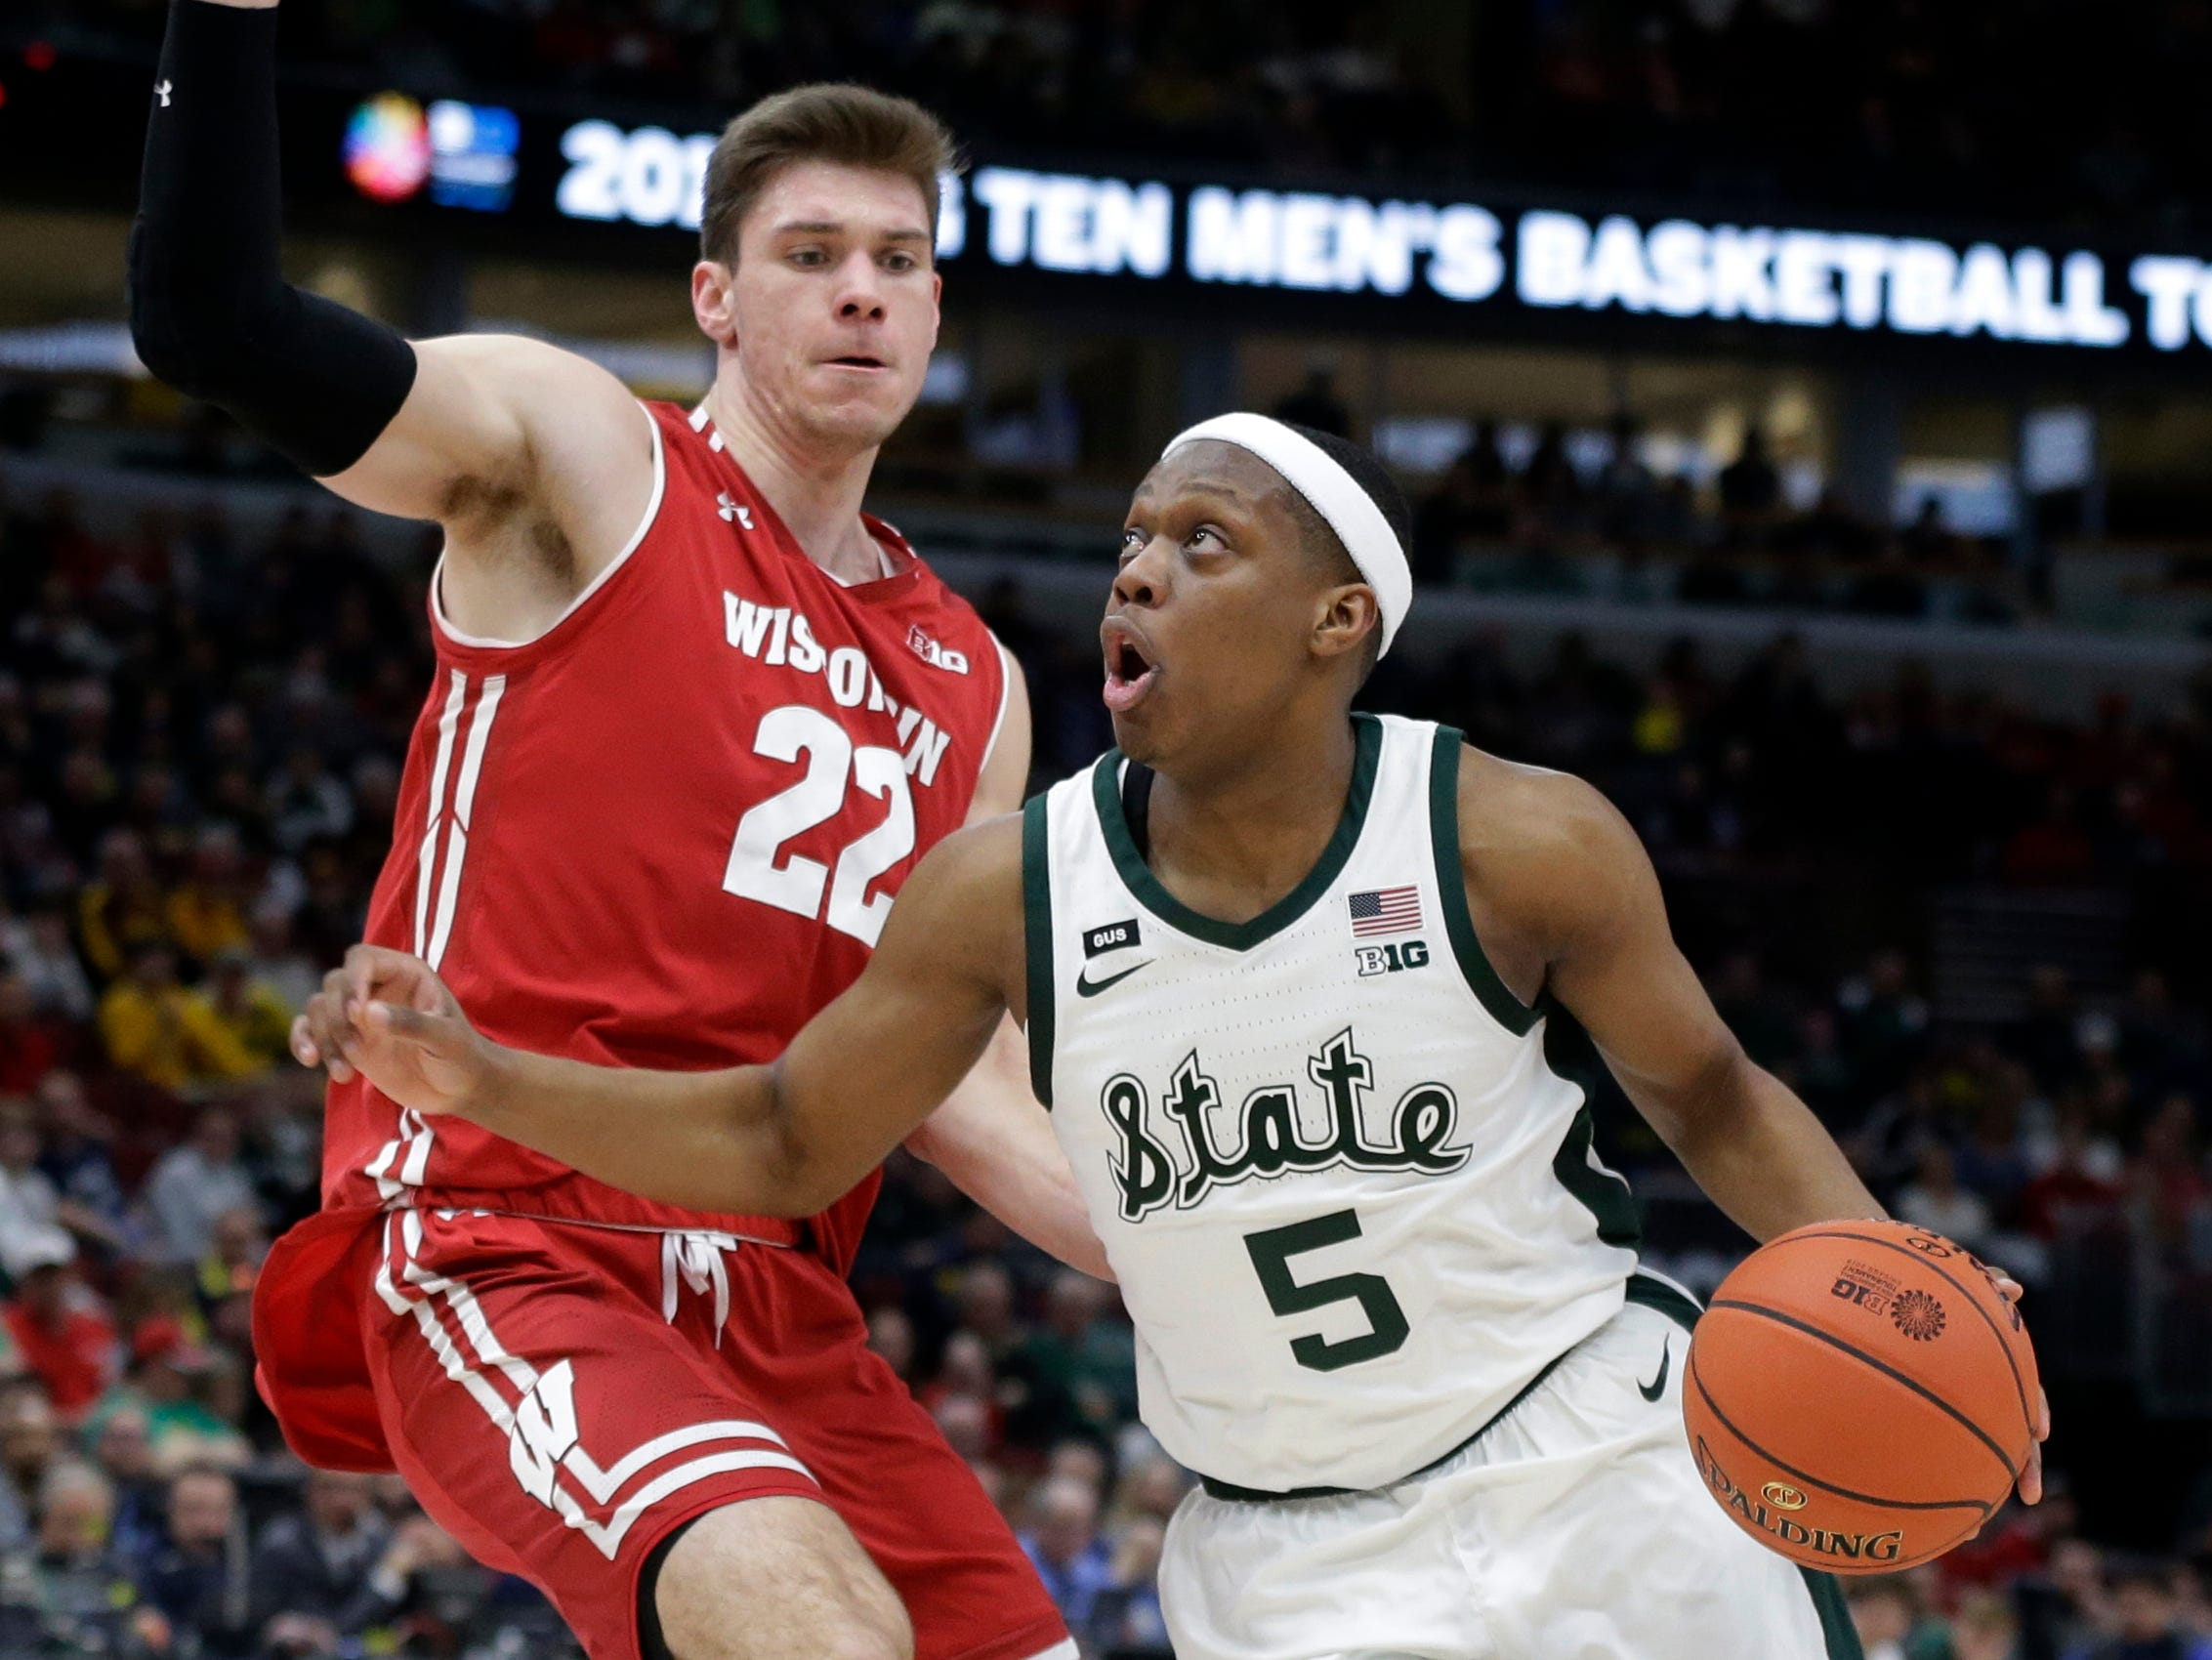 Michigan State's Cassius Winston (5) drives past Wisconsin's Ethan Happ (22) during the first half of an NCAA college basketball game in the semifinals of the Big Ten Conference tournament, Saturday, March 16, 2019, in Chicago.